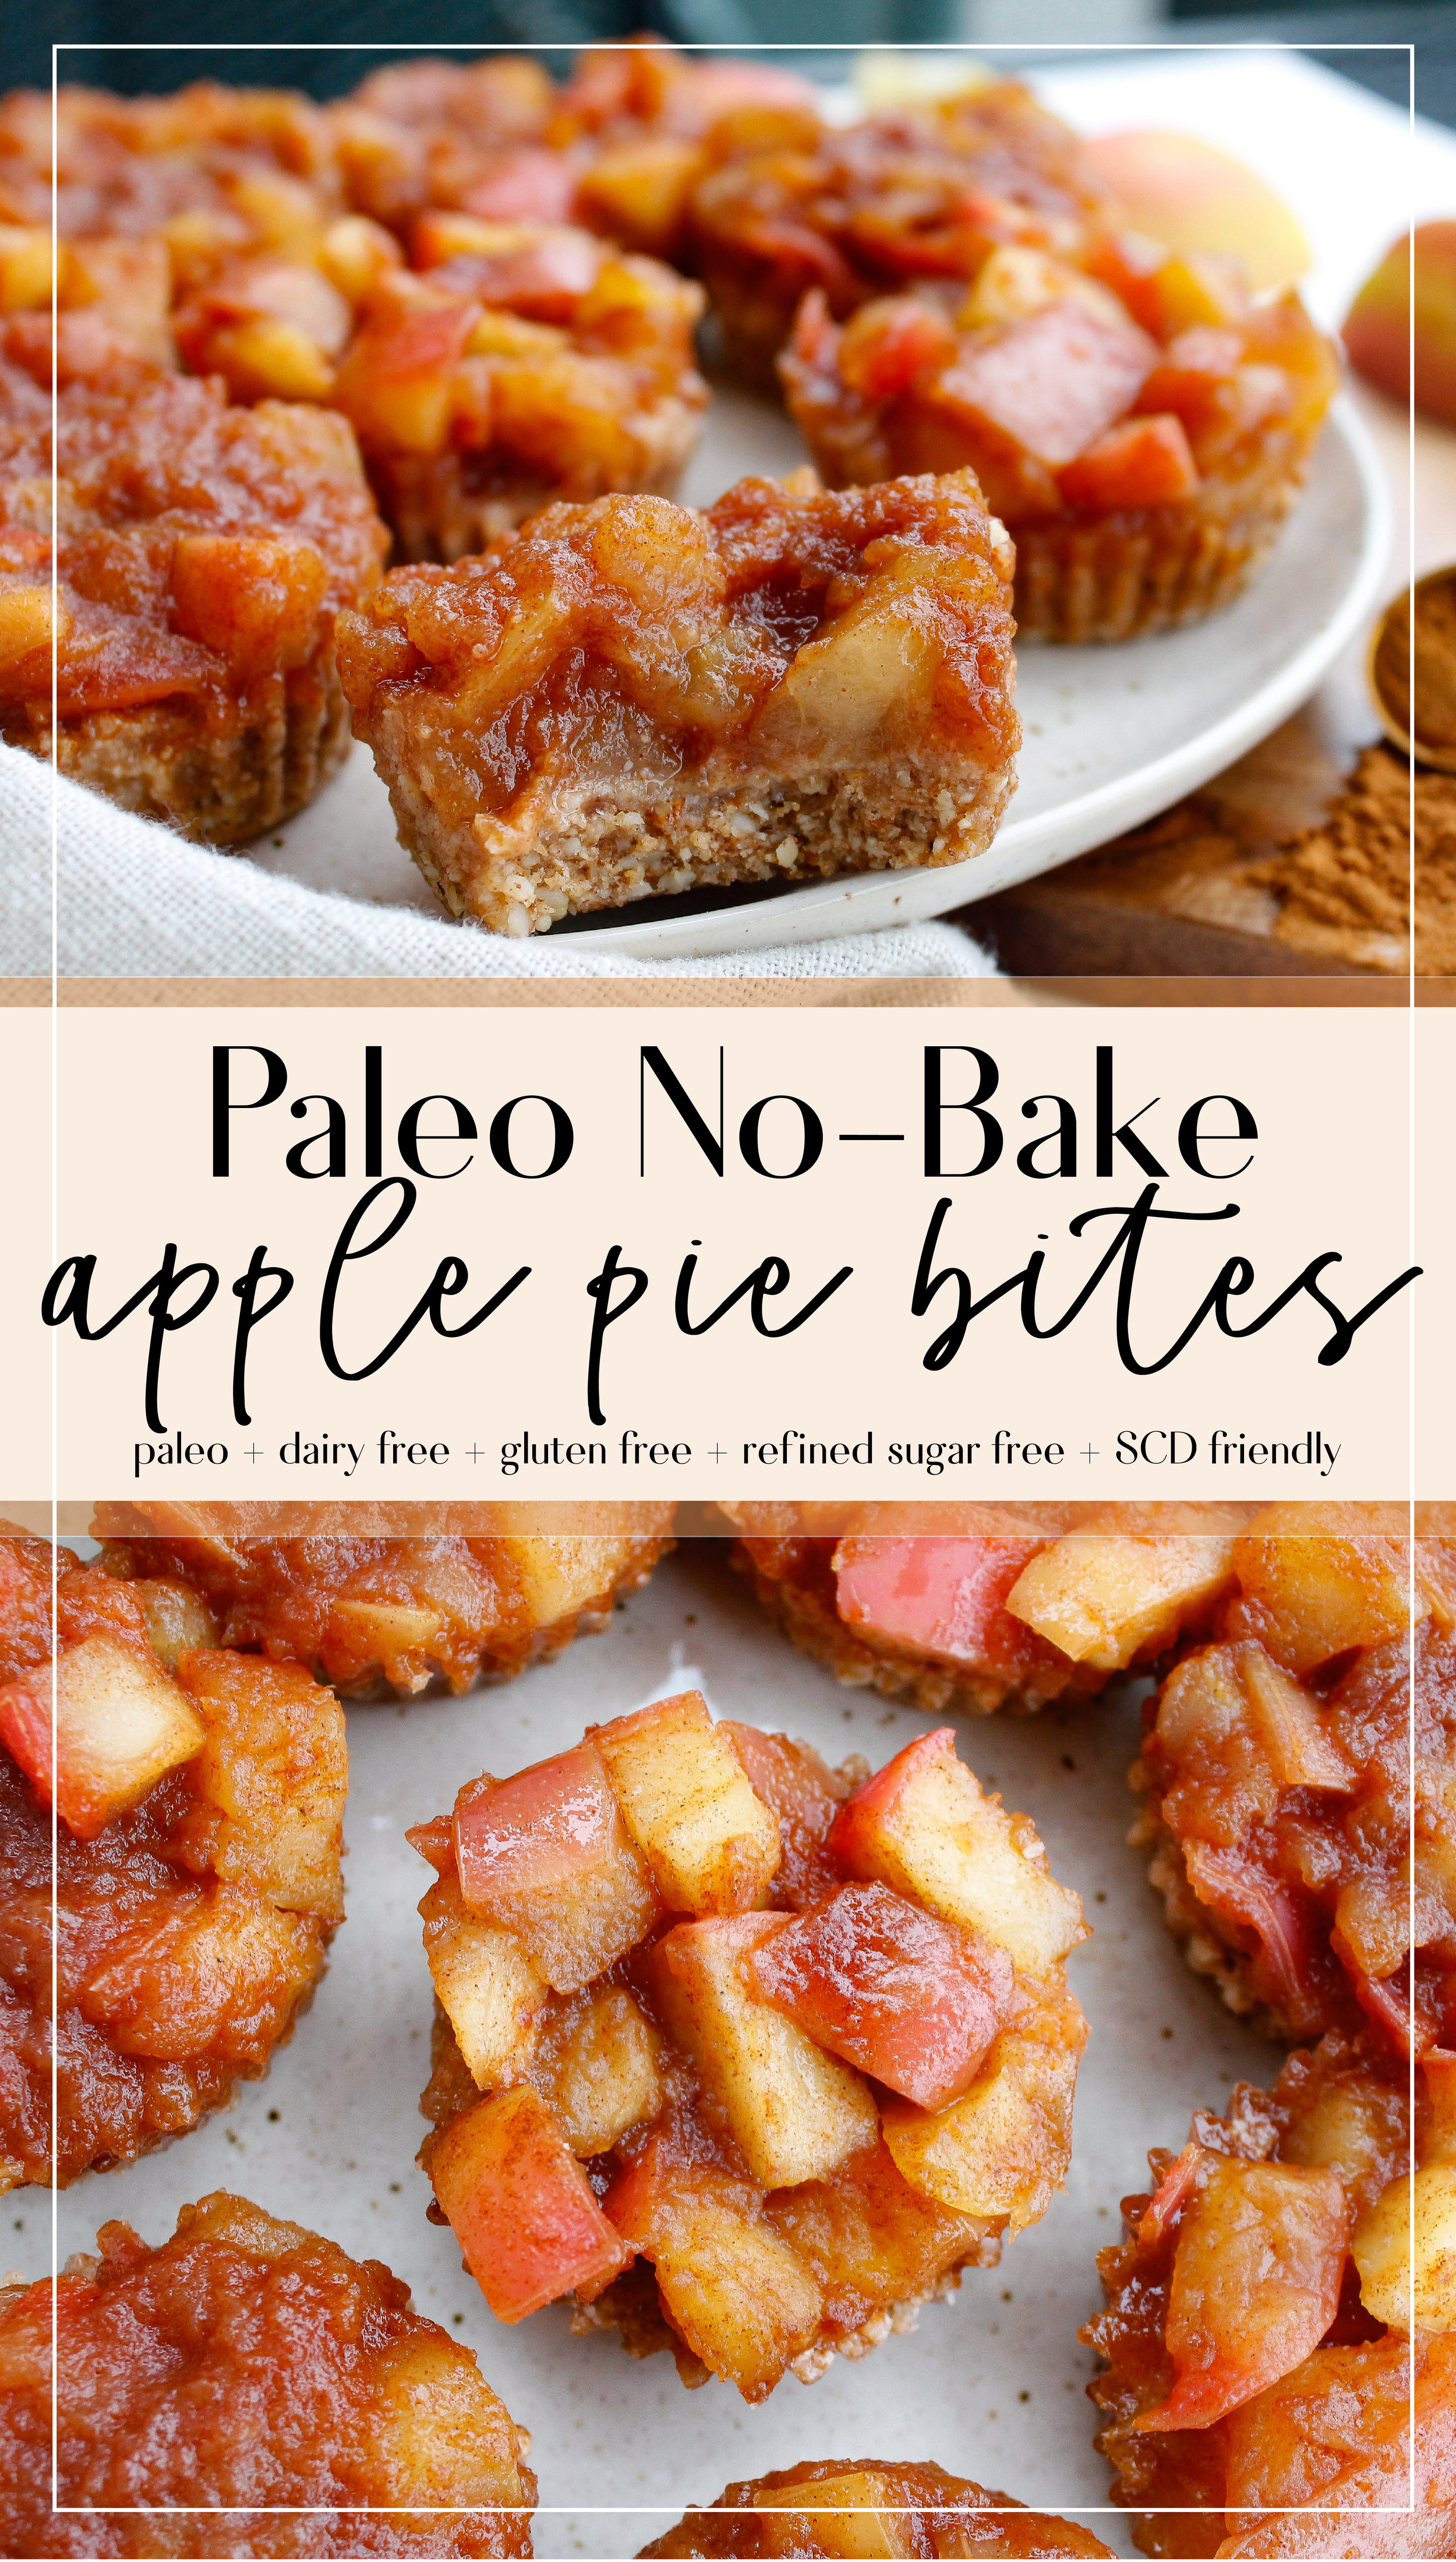 These paleo no-bake apple pie bites are the perfect healthy and easy desert recipe! They're grain free, gluten free, dairy free, refined sugar free and Specific Carbohydrate Diet friendly!! They're a great allergy friendly and gut friendly snack or desert option. #paleorecipes #specificcarbohydratediet